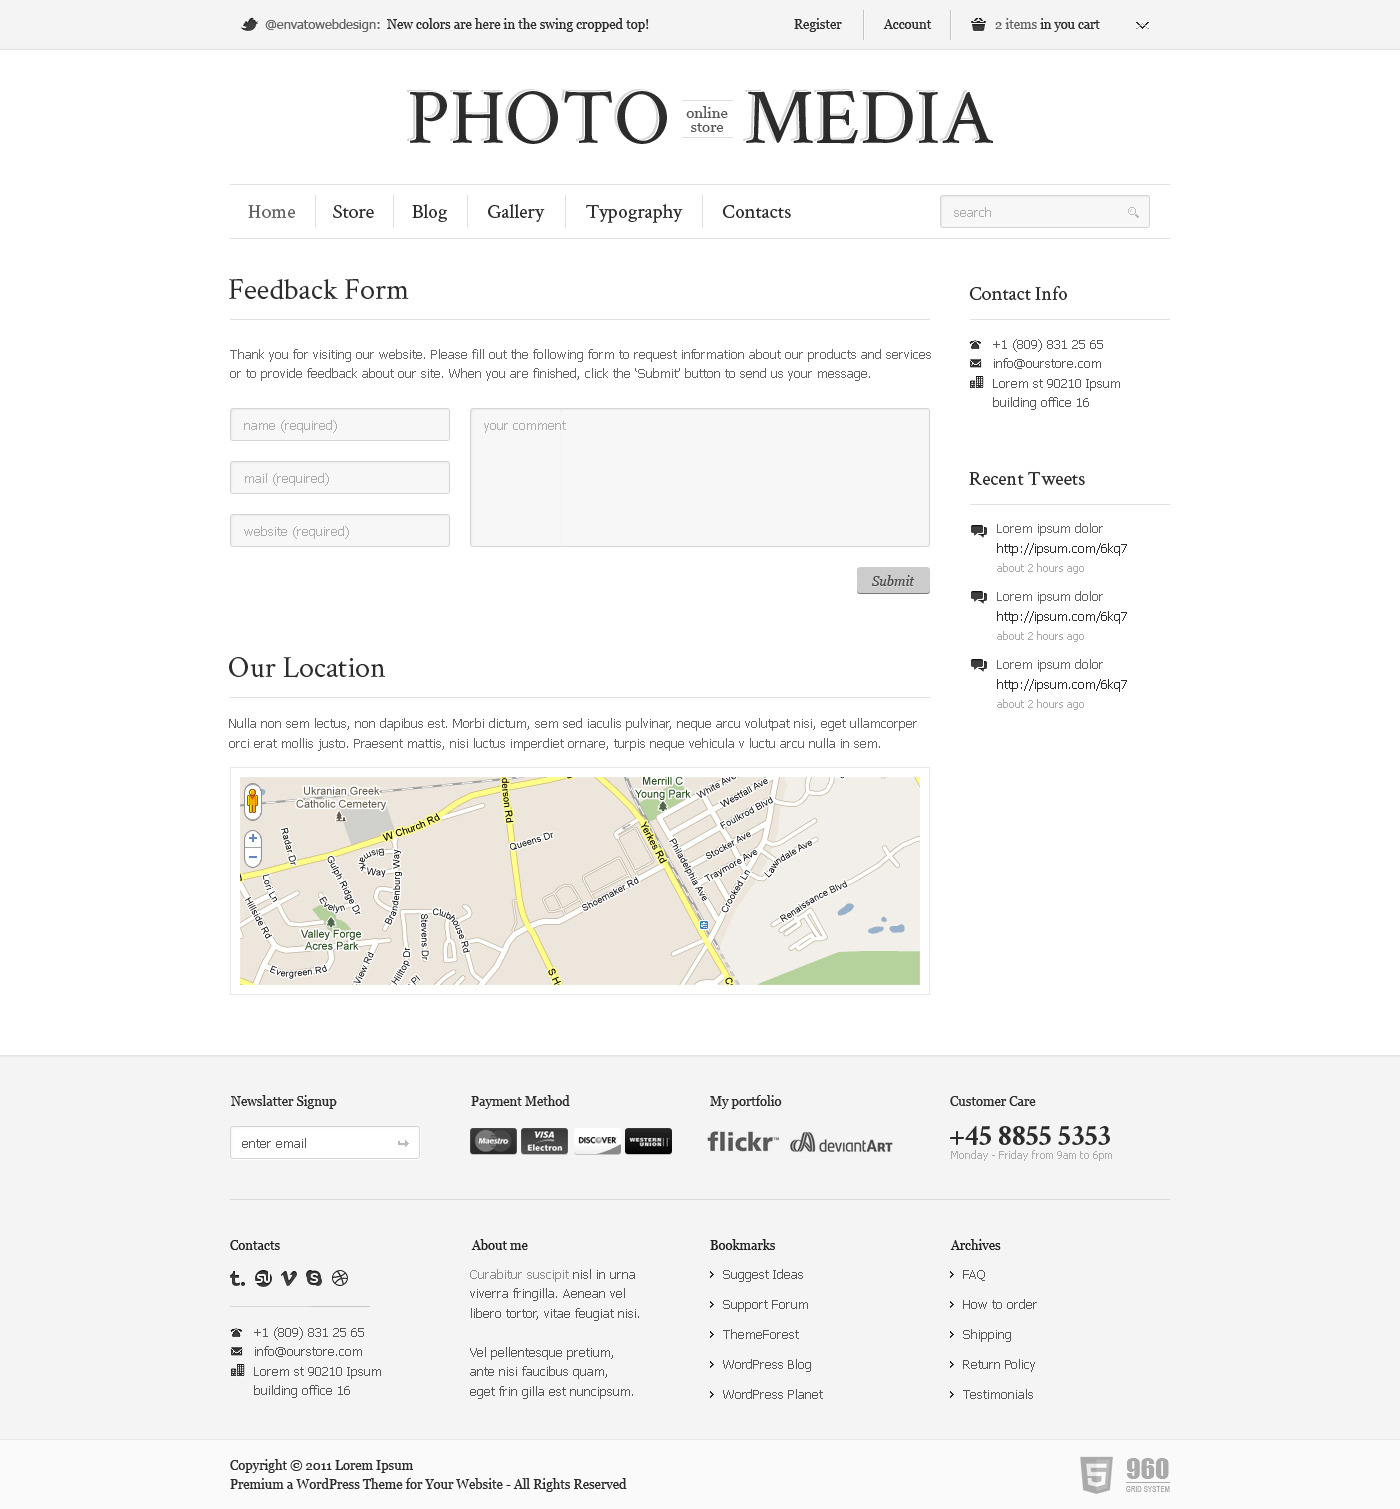 Phomedia Wordpress Theme - A WP E-Commerce theme - Contacts page overview